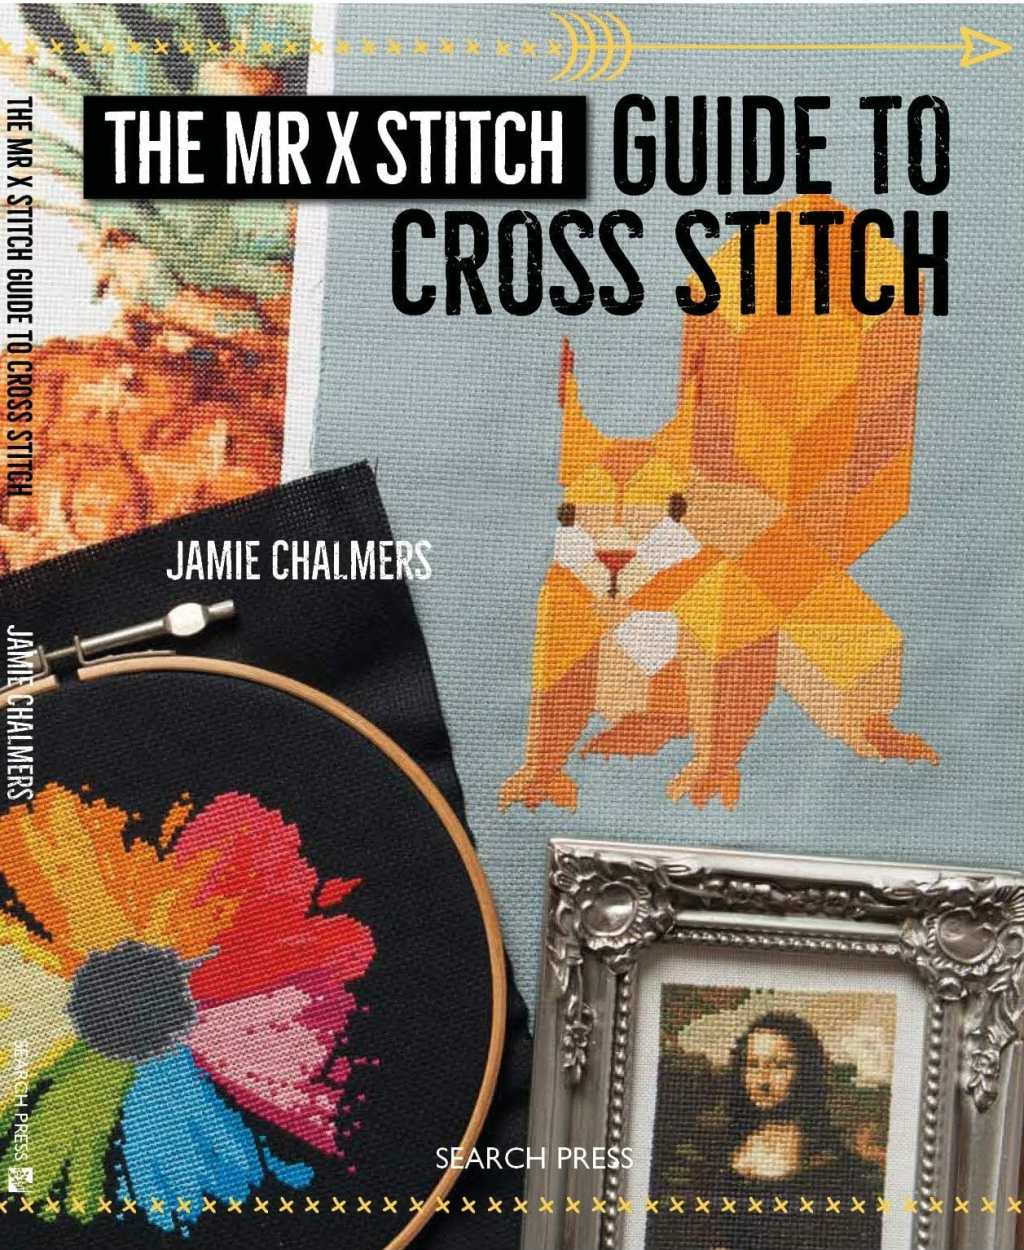 Have you bought the Mr X Stitch Guide to Cross Stitch?